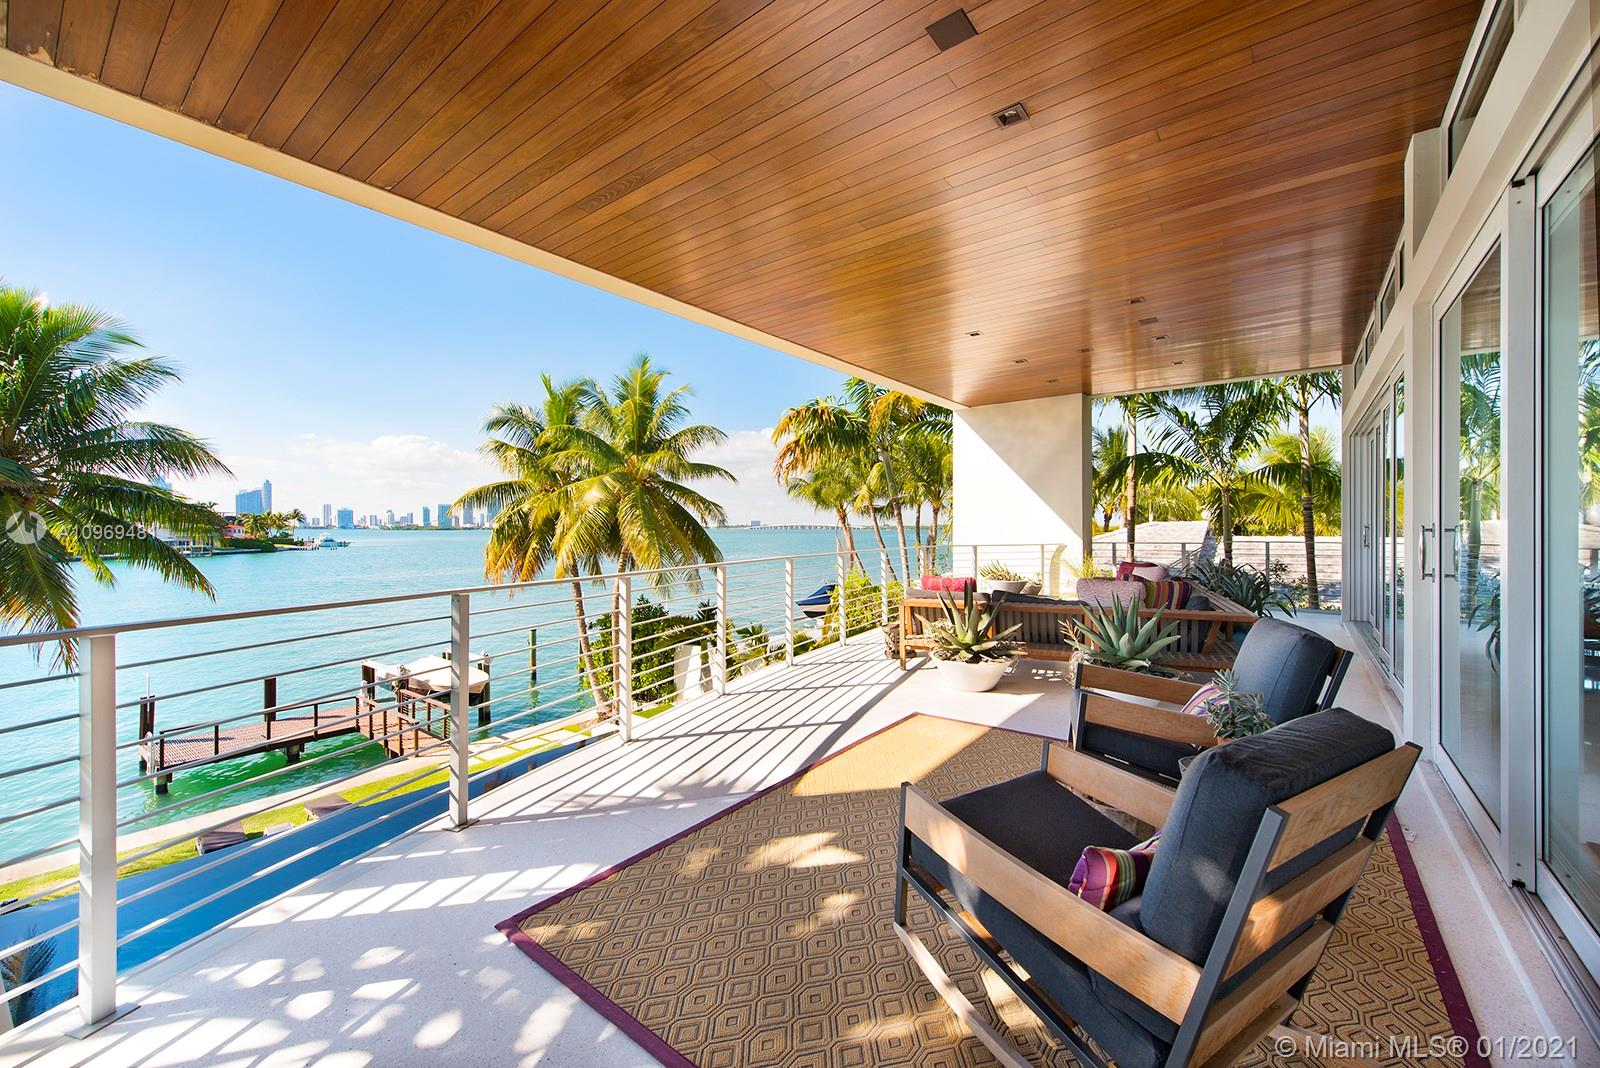 Venetian Islands - 610 W Dilido, Miami Beach, FL 33139